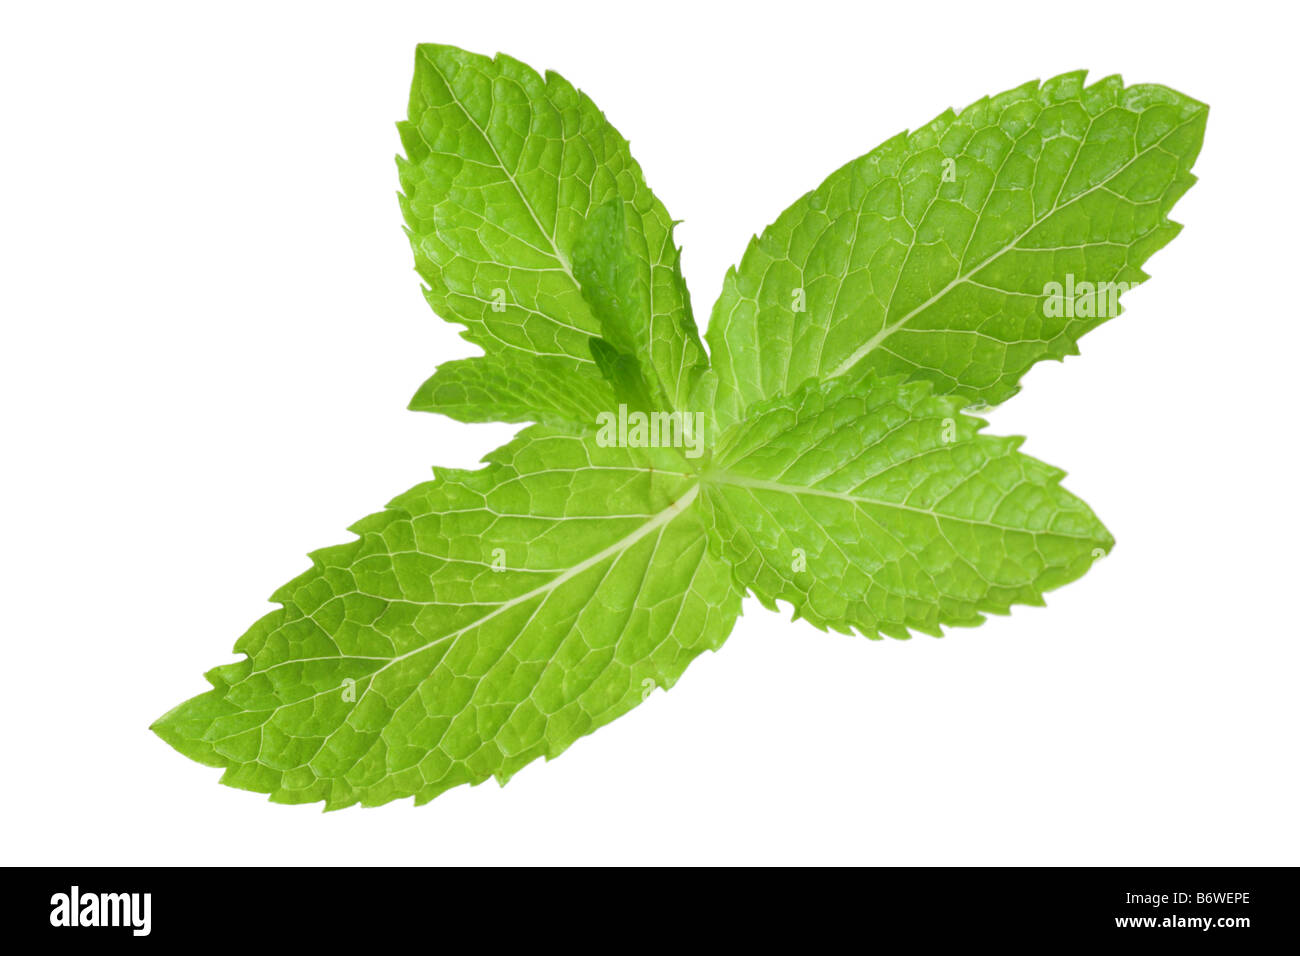 Sprig of mint cut out isolated on white background - Stock Image